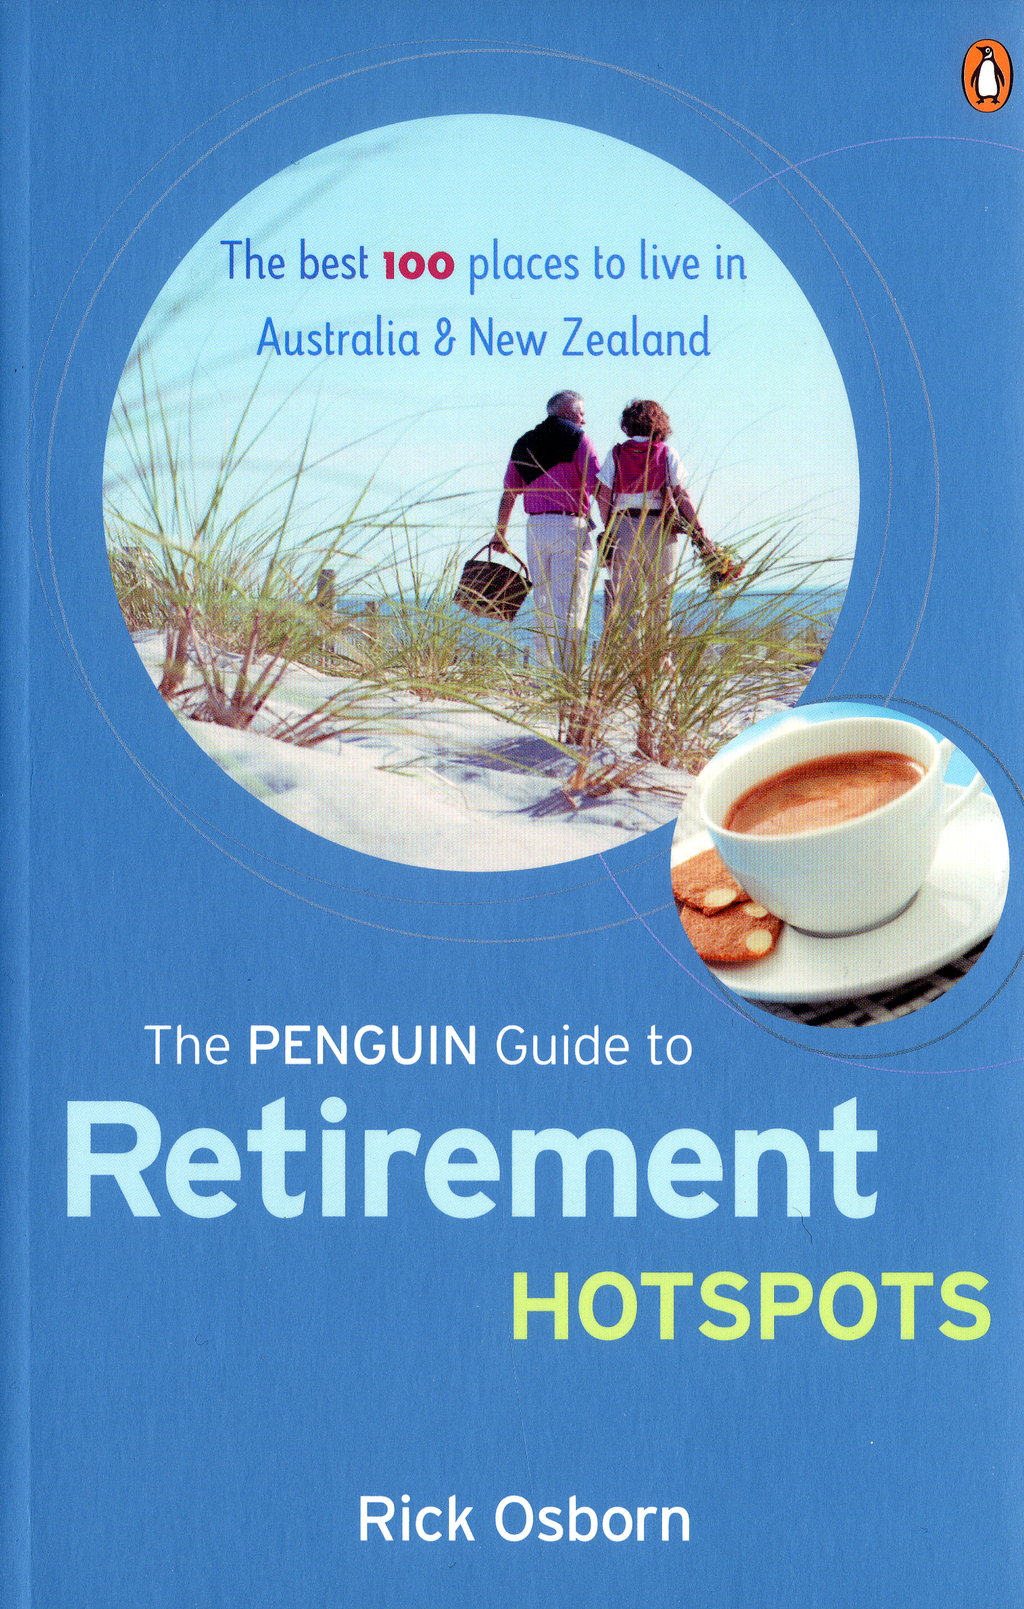 The Penguin Guide to Retirement Hotspots